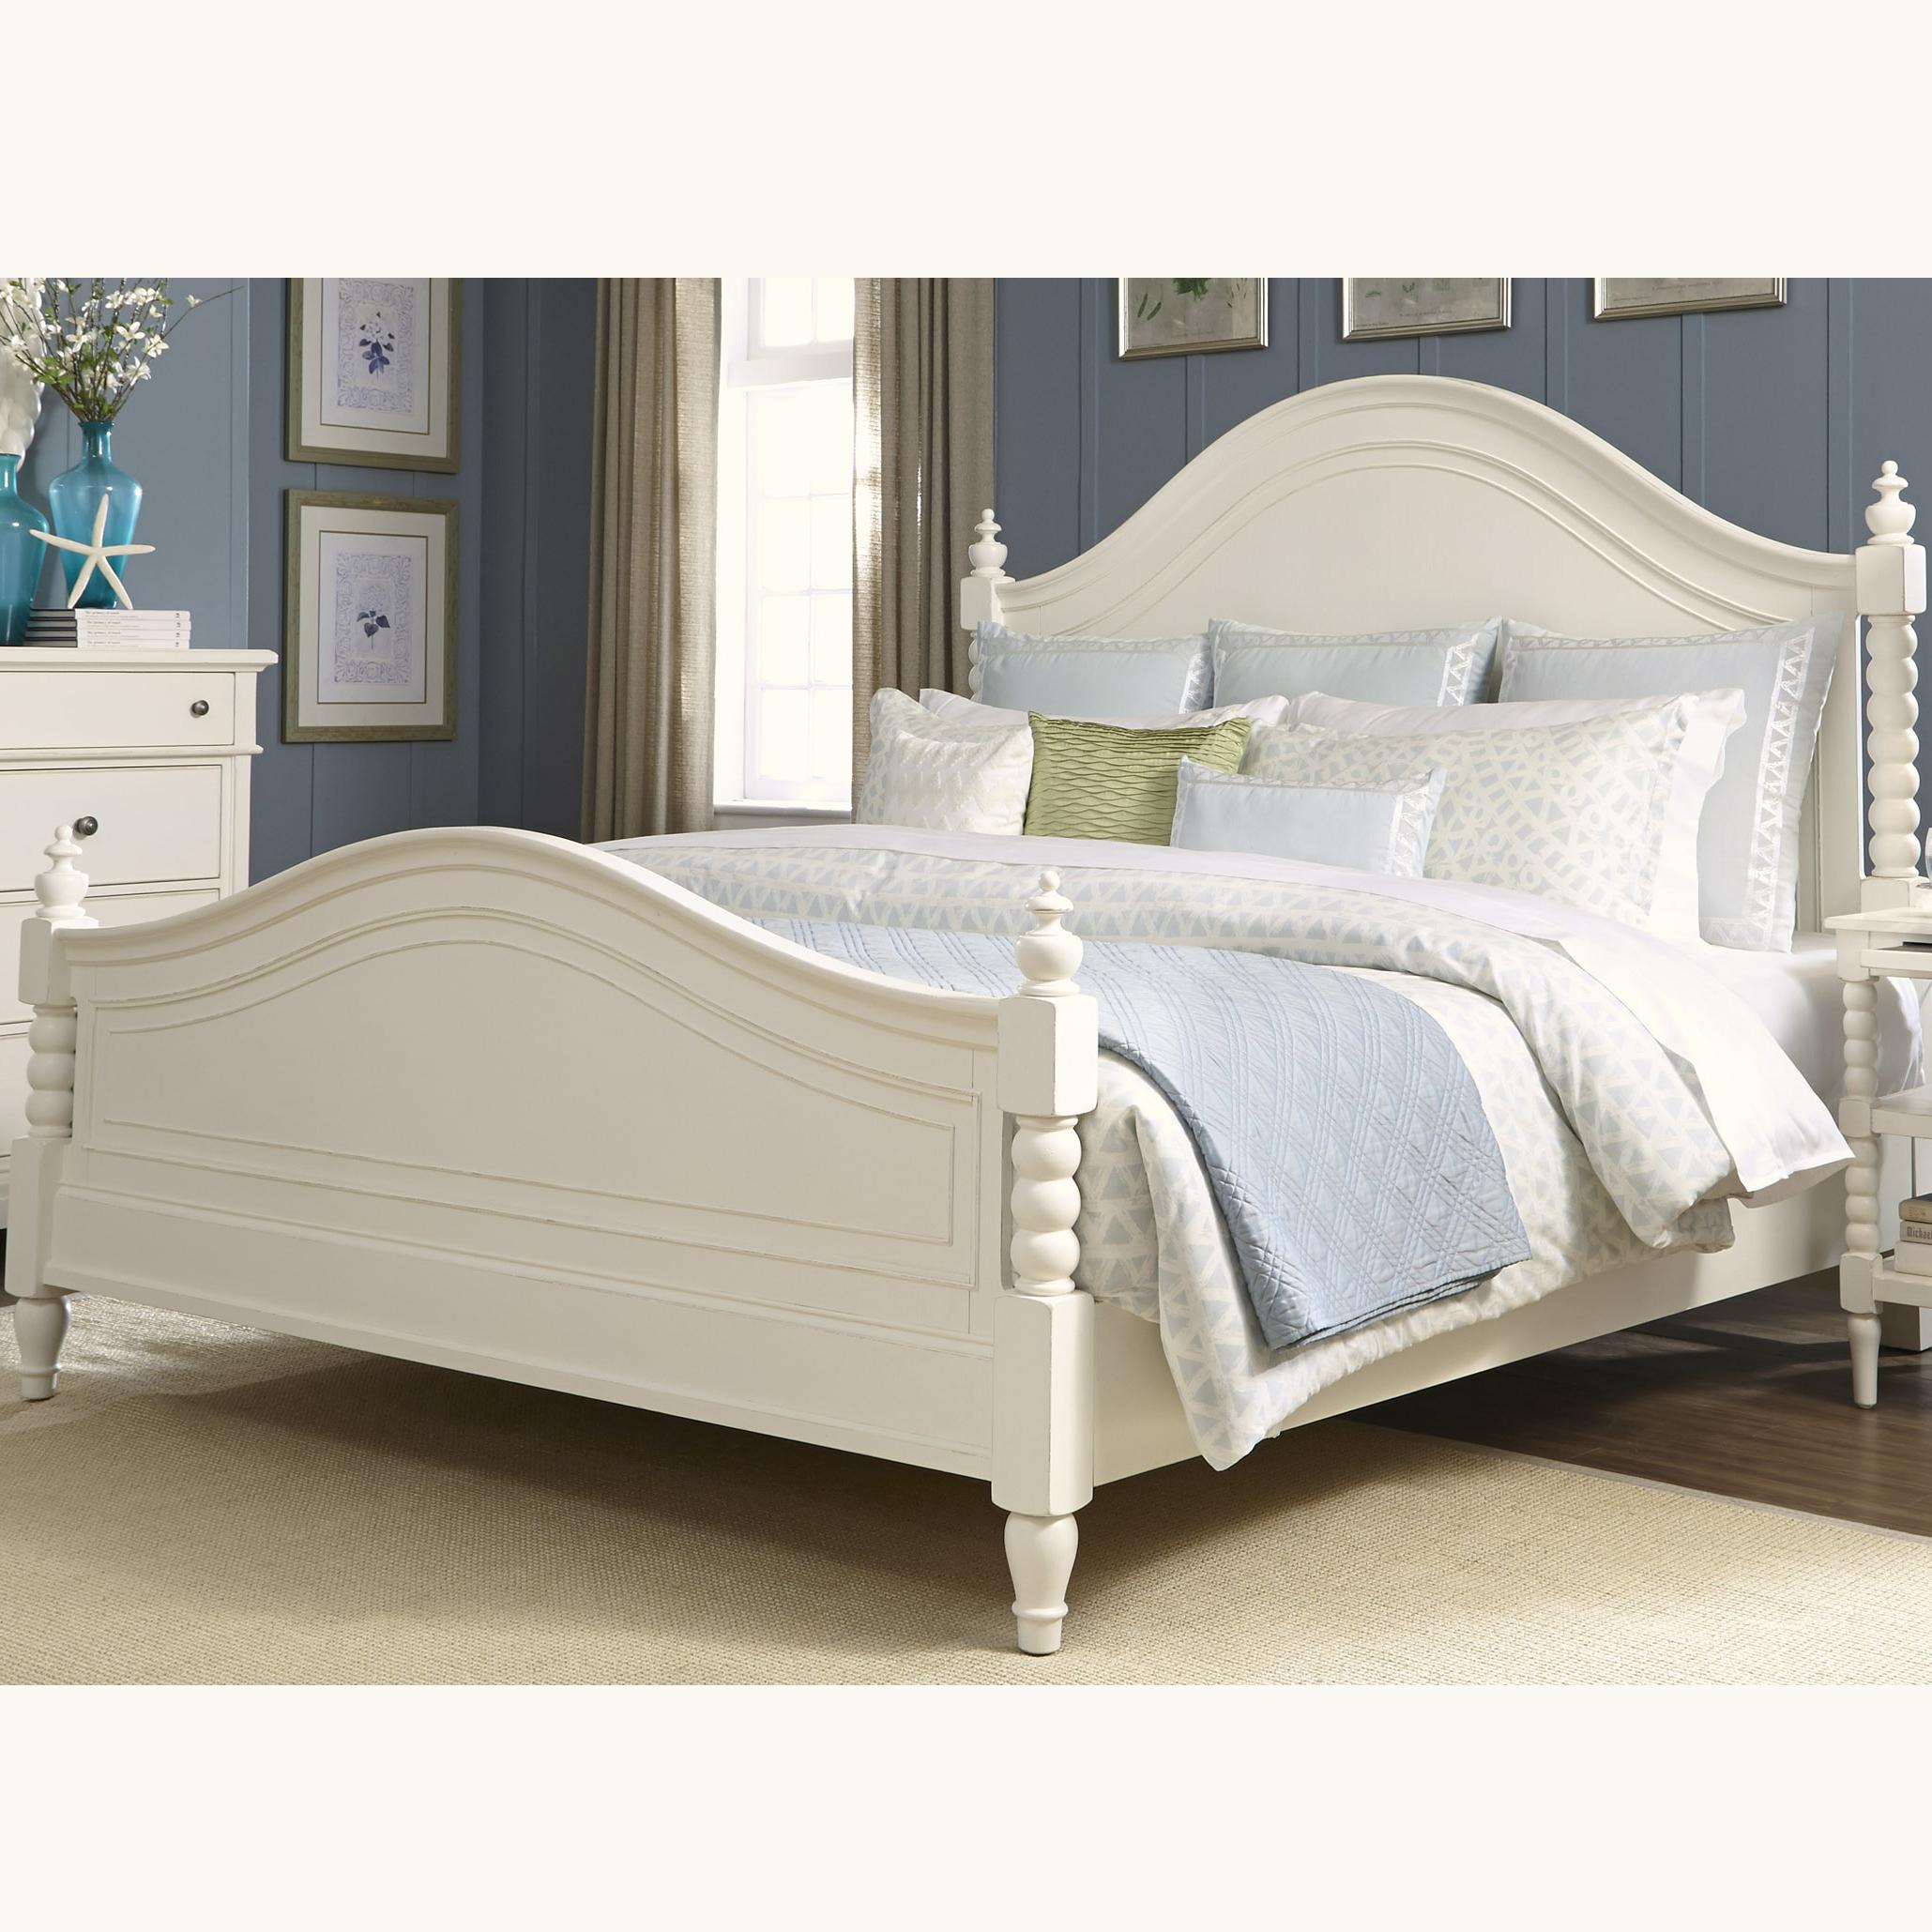 Liberty Furniture Harbor View 631 BR QPS Queen Poster Bed